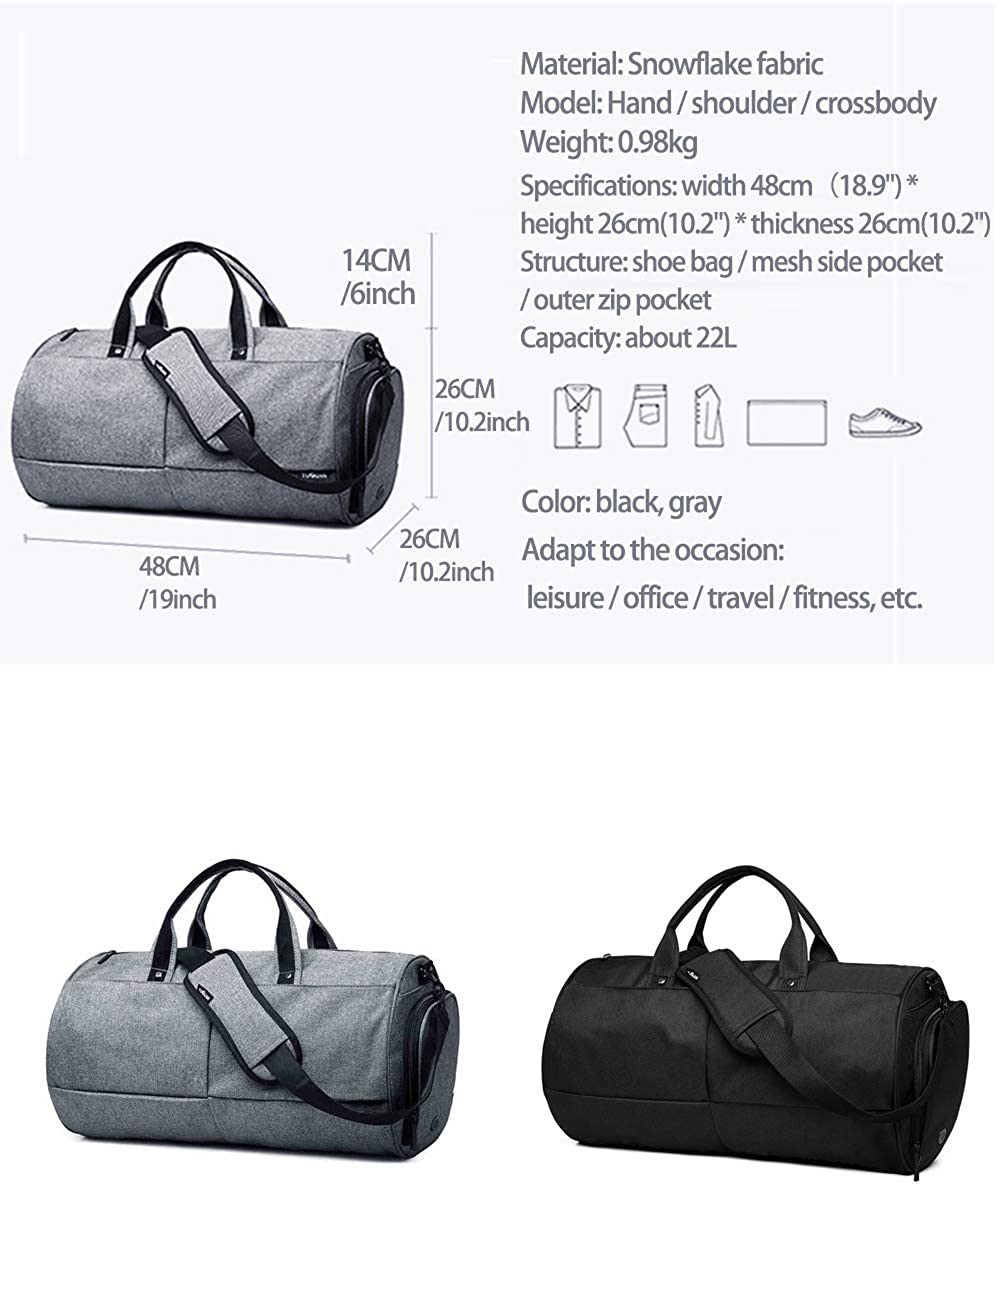 2bdf7f5c73d Ba Cabin Baggage Easyjet Hand Luggage Cargo Holdall - Onboard Travel Huge  Duffel Flight Bags With Wet Pocket And Shoes Compartment TAAMBAB:  Amazon.co.uk: ...